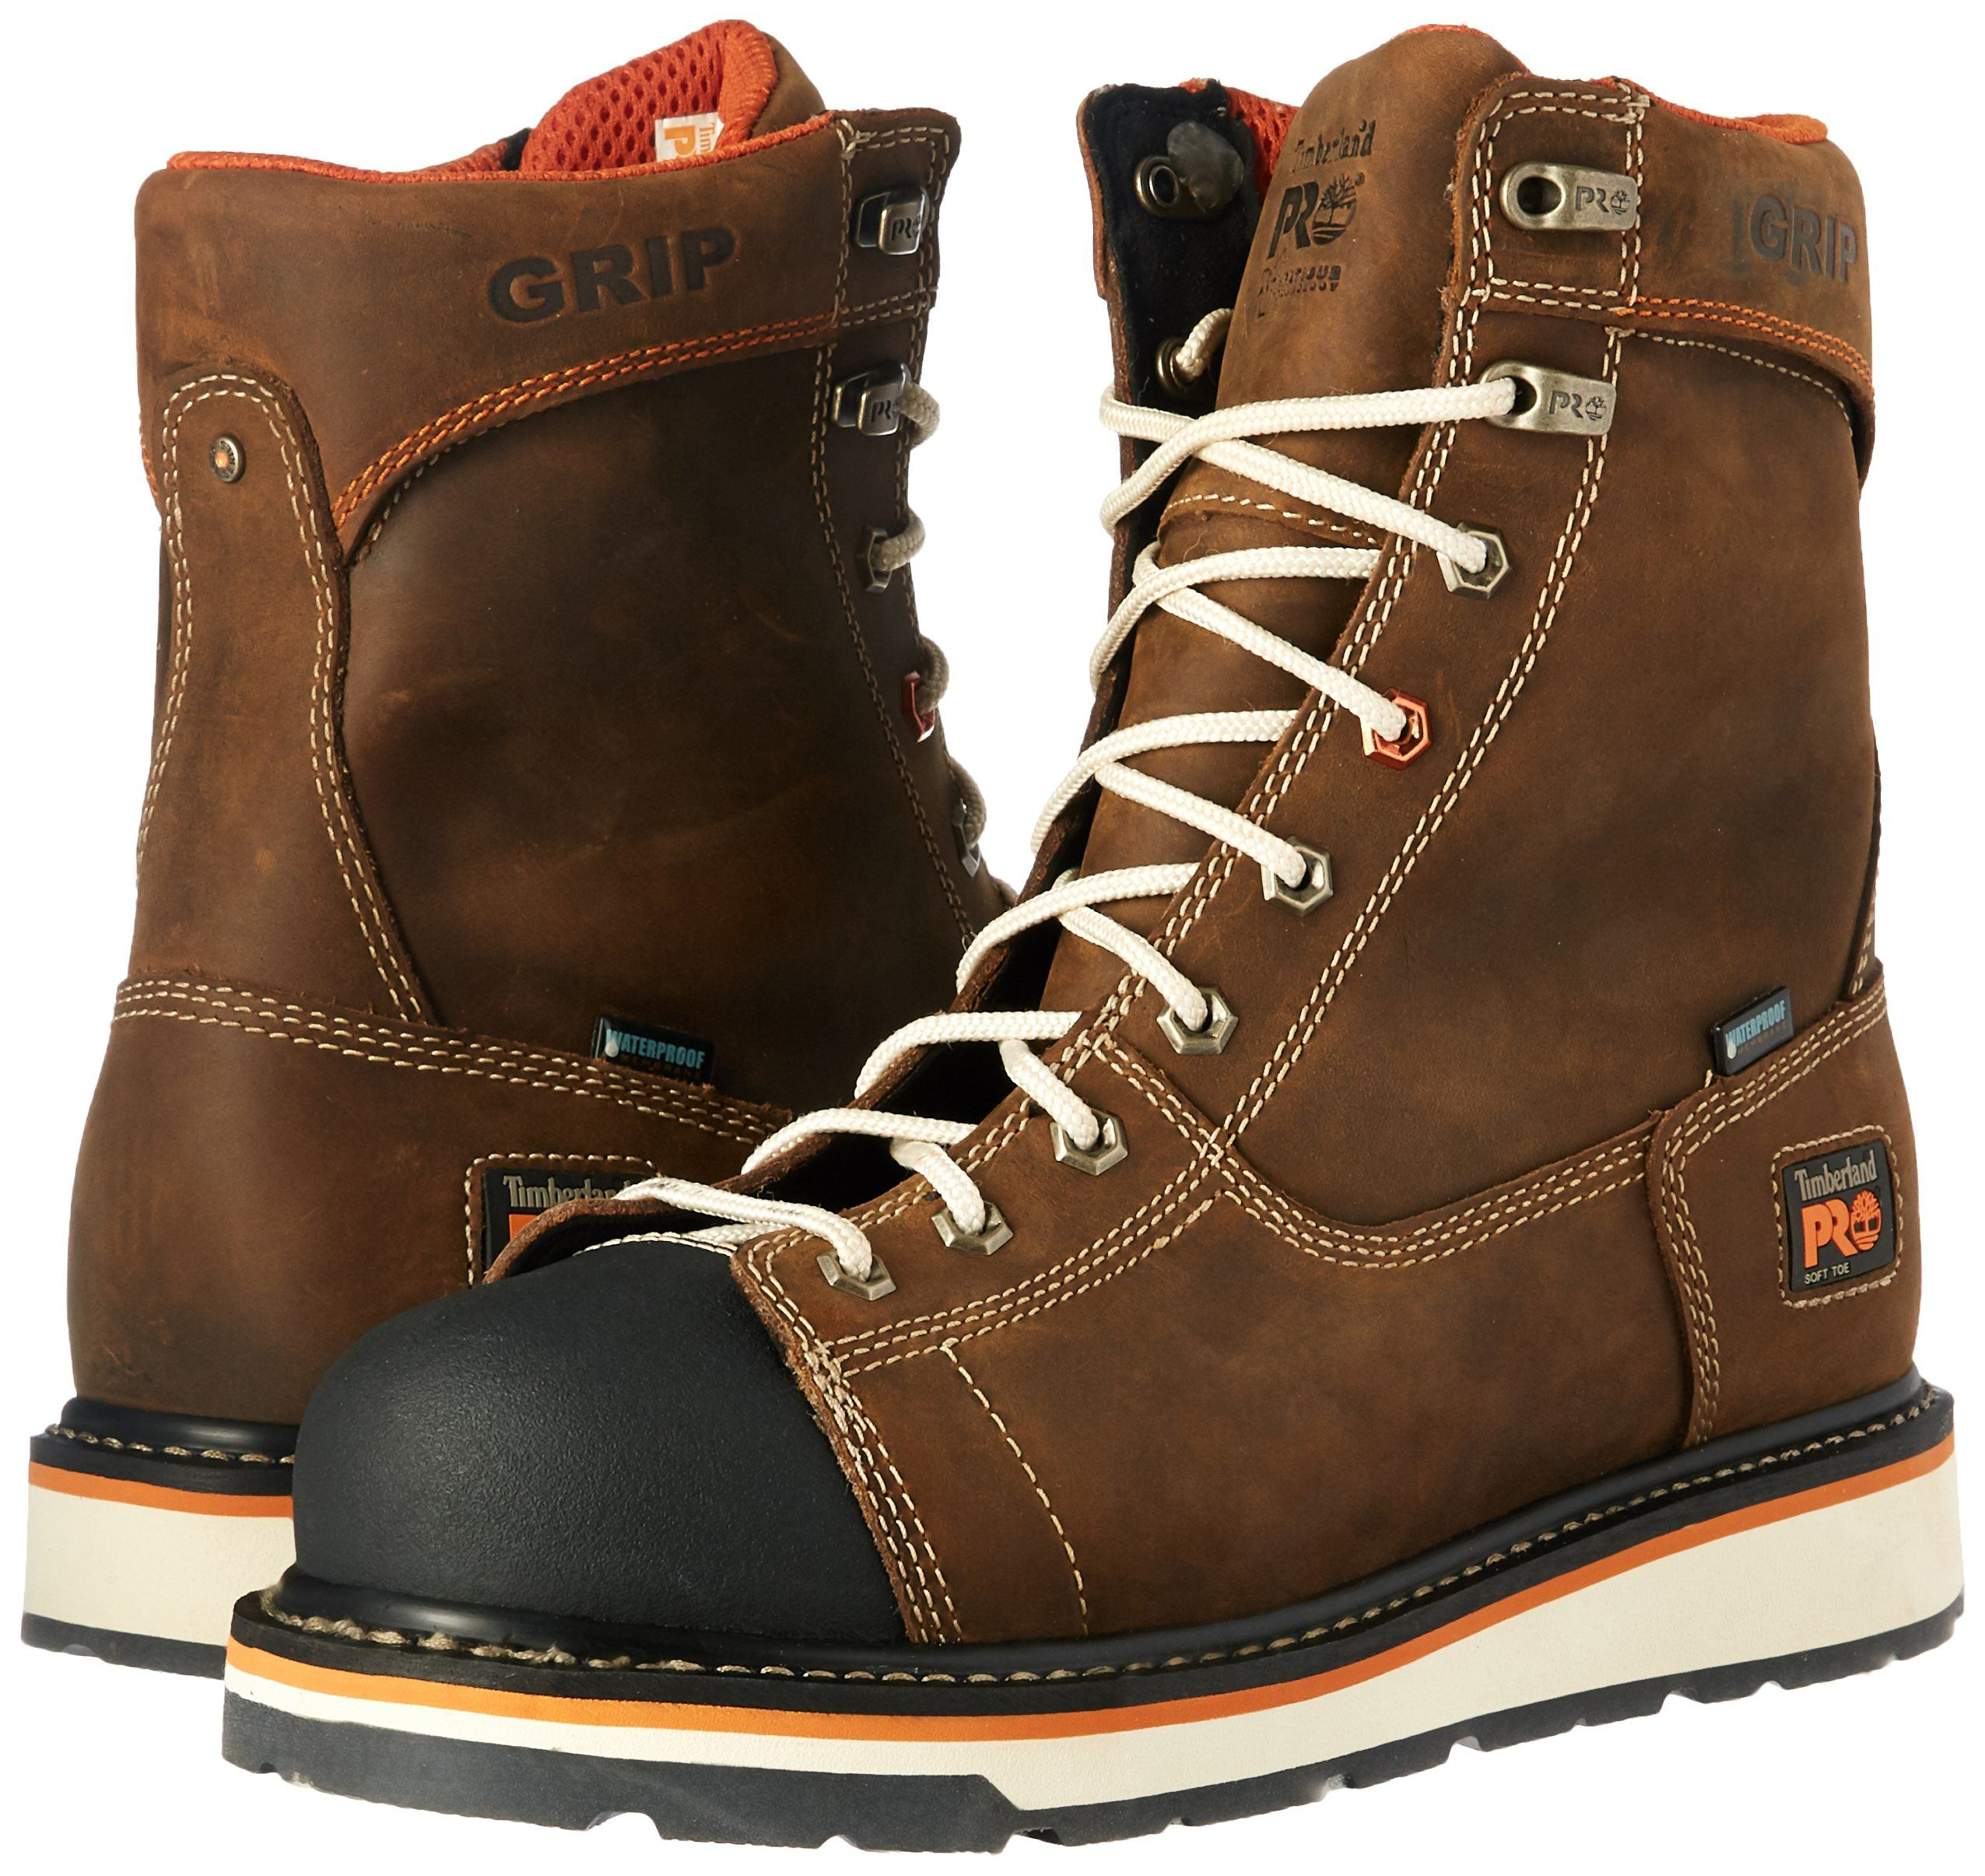 Timberland PRO Mens Gridworks 8 Soft Toe Waterproof Industrial and  Construction Shoe Brown Full Grain Leather 14 M US ** To view further for  this item, ...